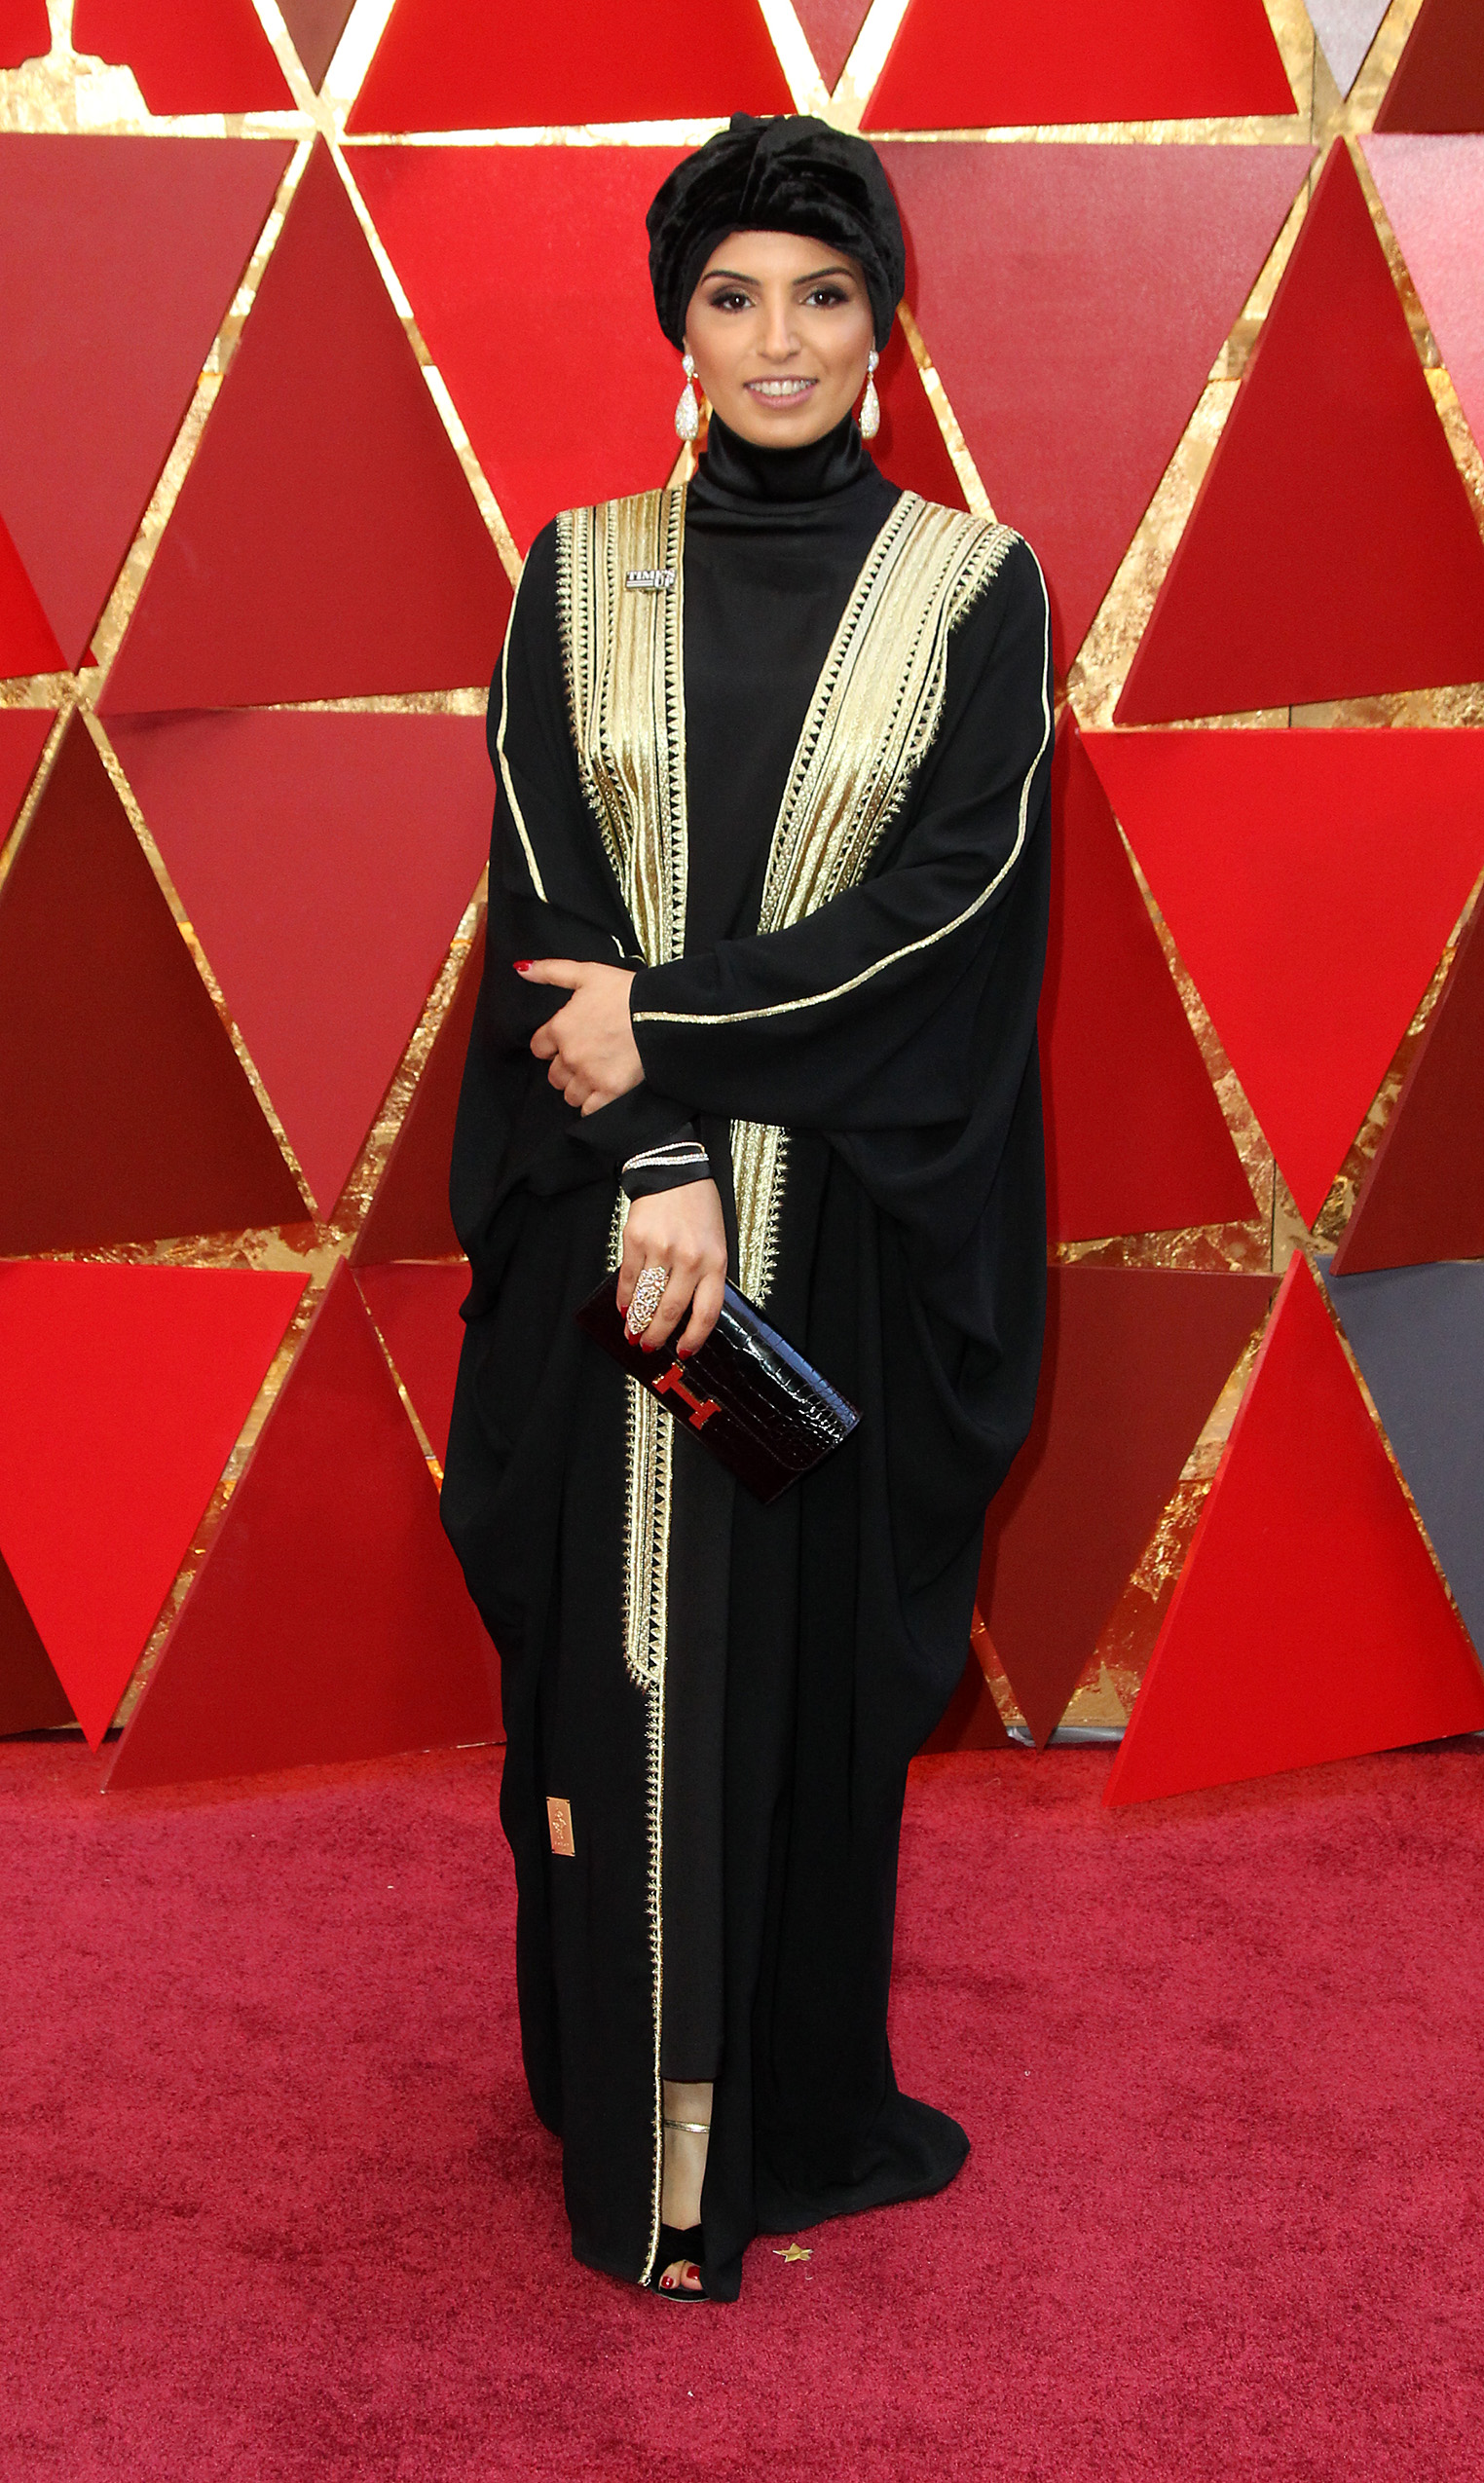 Fatma Al Remaihi{&amp;nbsp;}arrives at the 90th Annual Academy Awards (Oscars) held at the Dolby Theater in Hollywood, California. (Image: Adriana M. Barraza/WENN.com)<p></p>